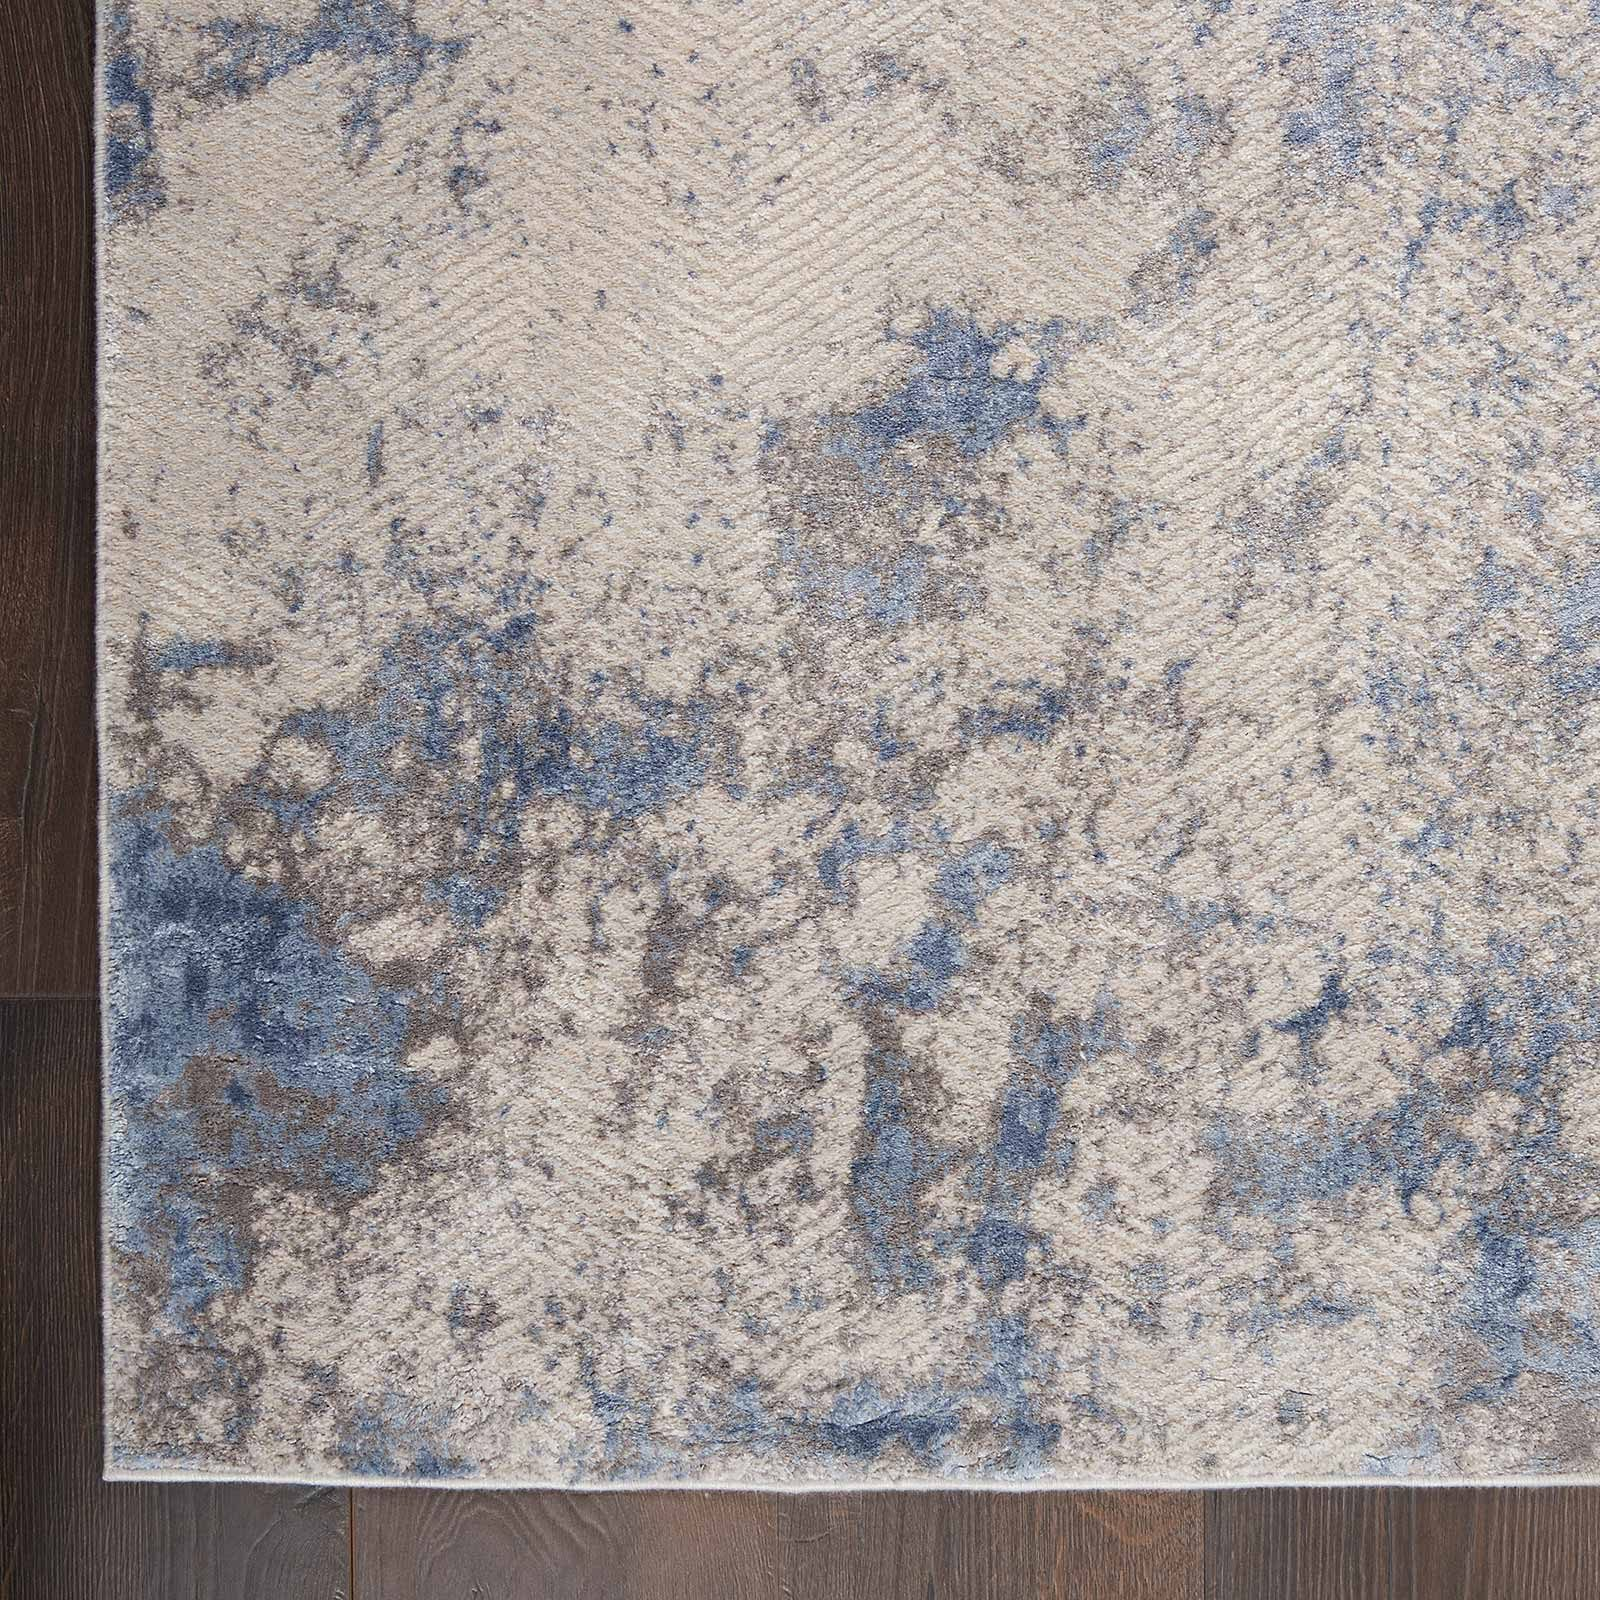 Andessi tapijt Silky Textures SLY04 BLUE IVORY GREY 5x7 099446710178 CR C